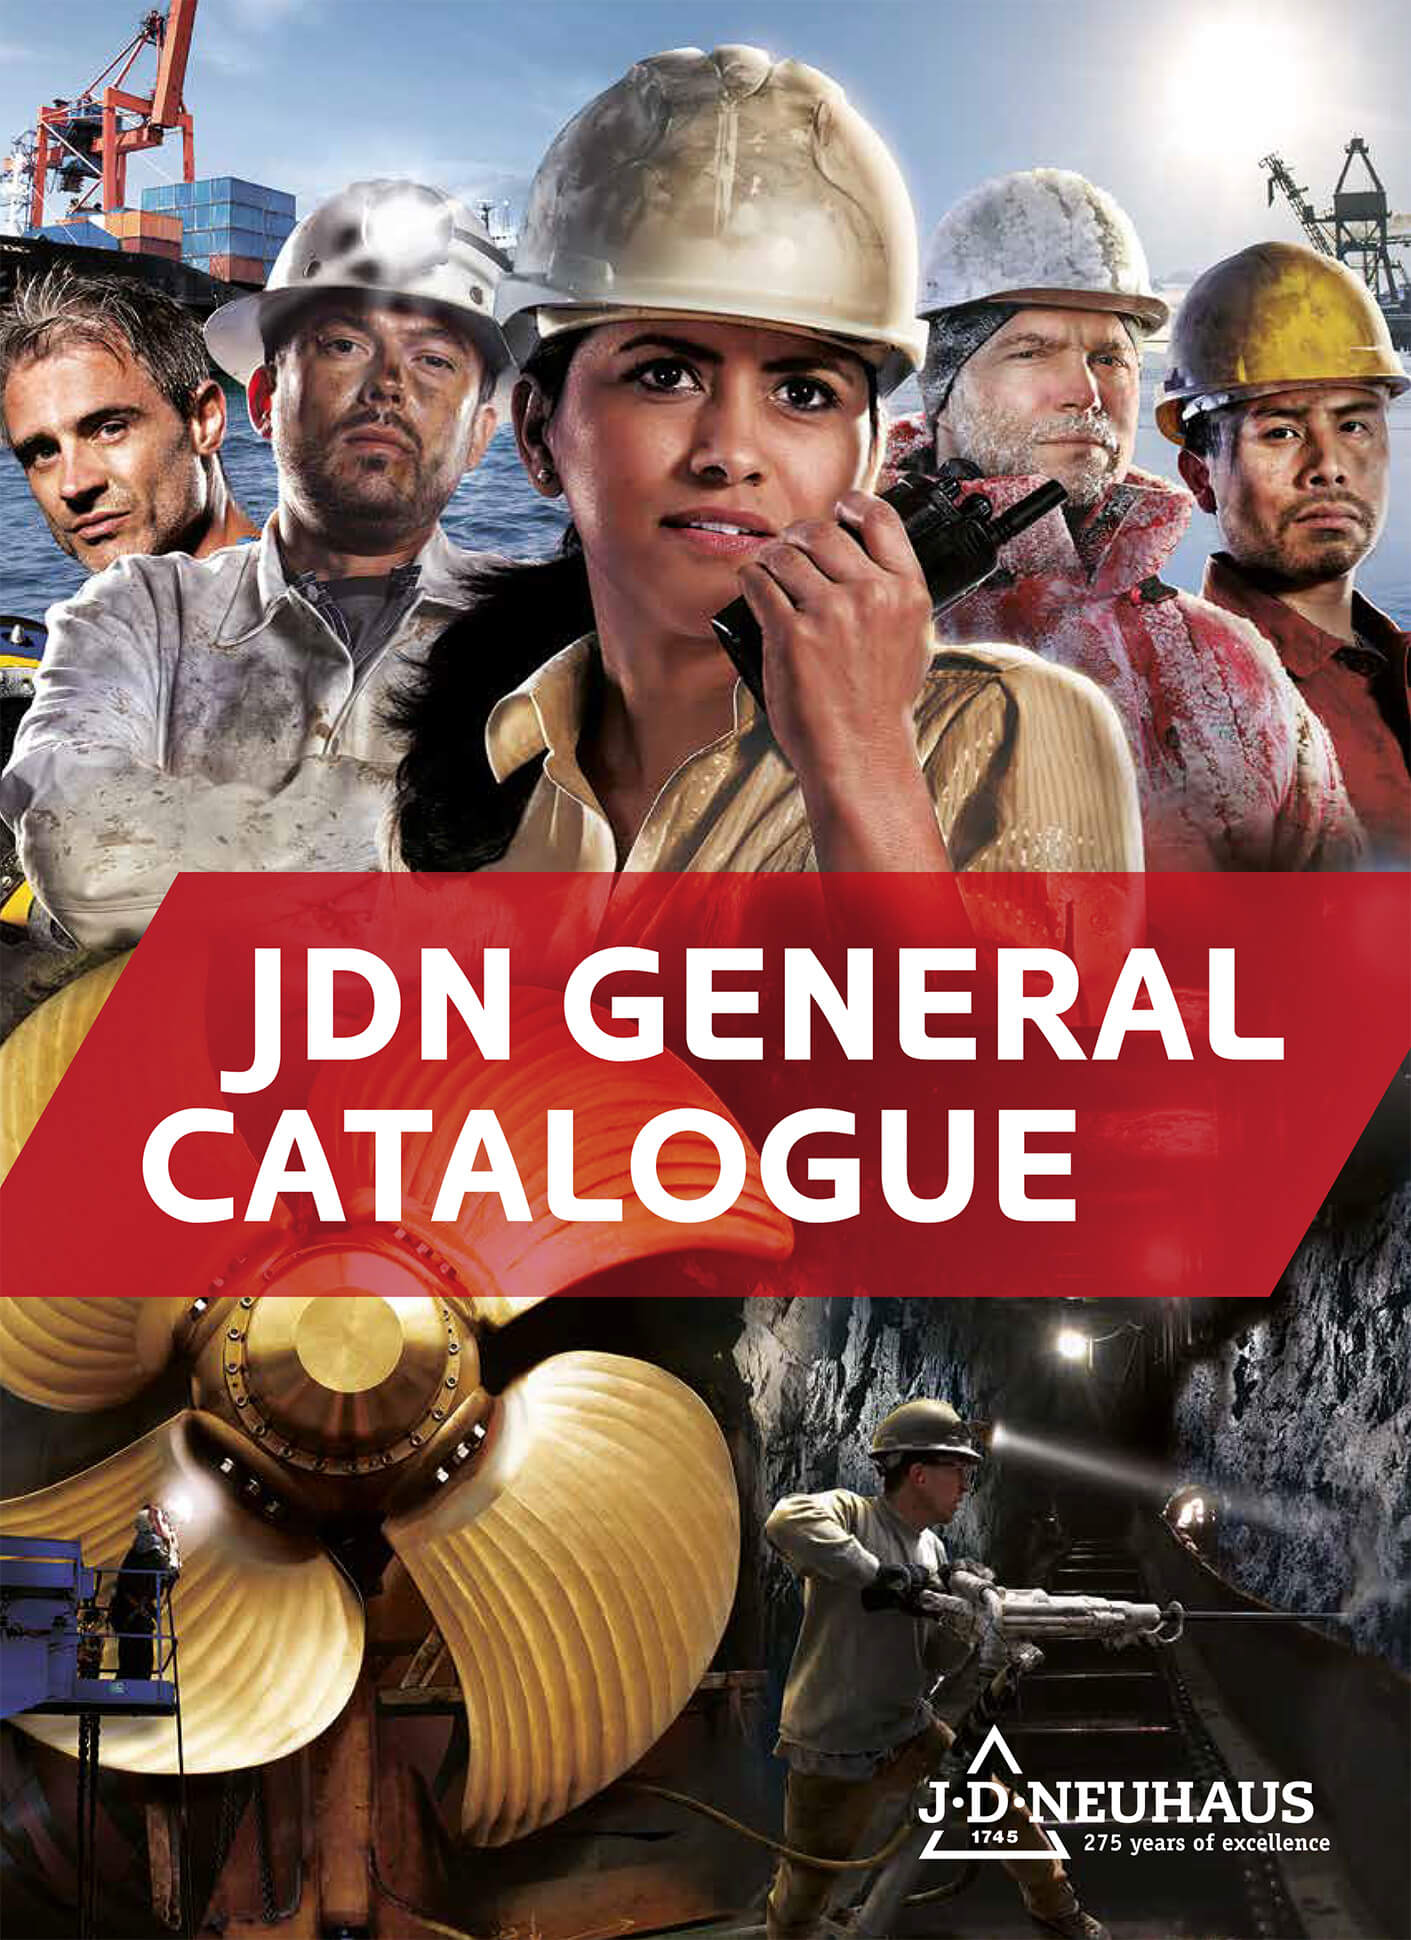 JDN General Catalogue